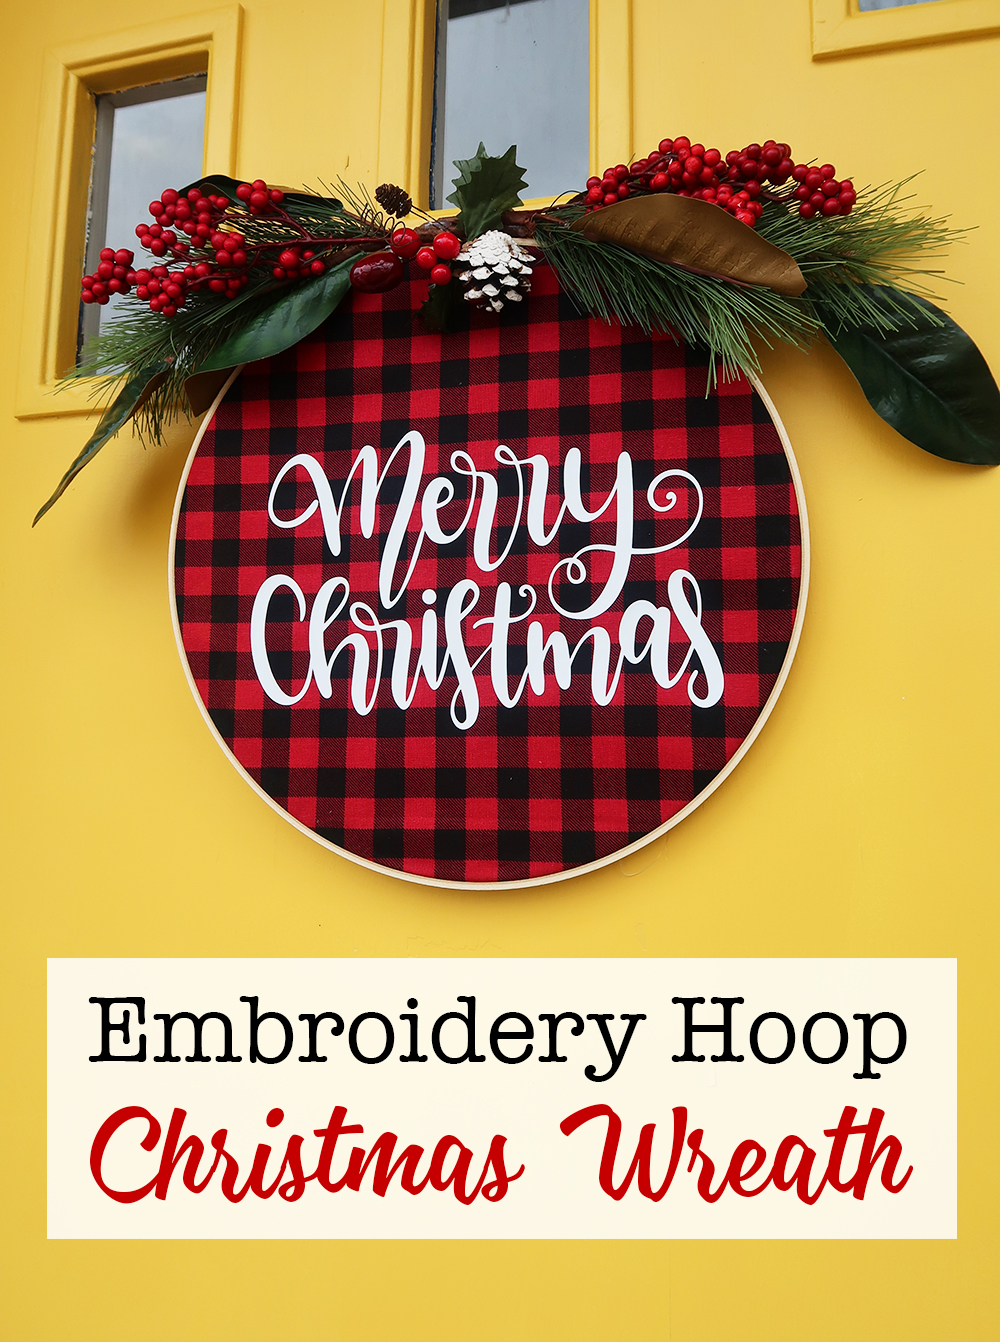 Embroidery-Hoop-Christmas-Wreath.jpg